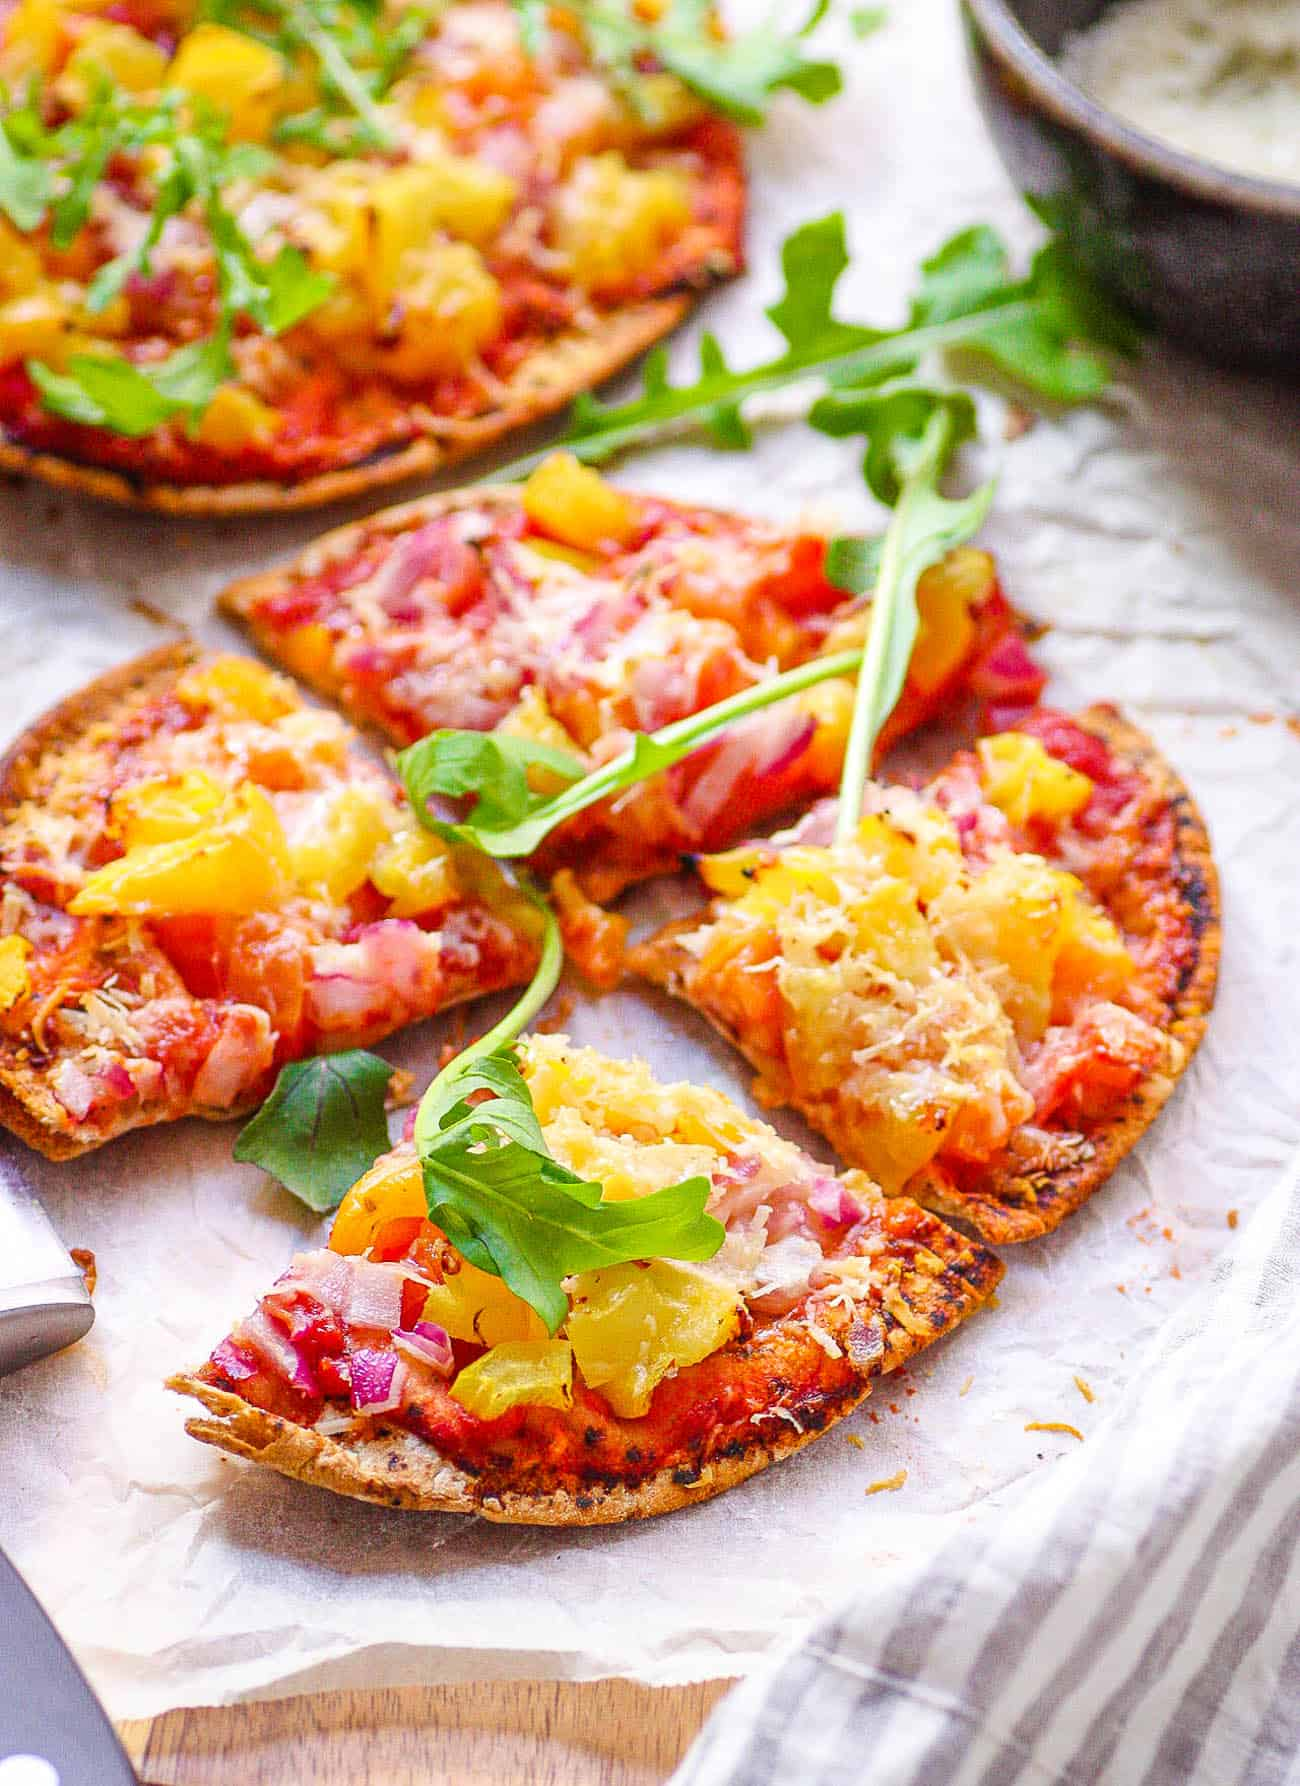 healthy homemade pita pizza / pita bread pizza with veggies as toppings on a cutting board